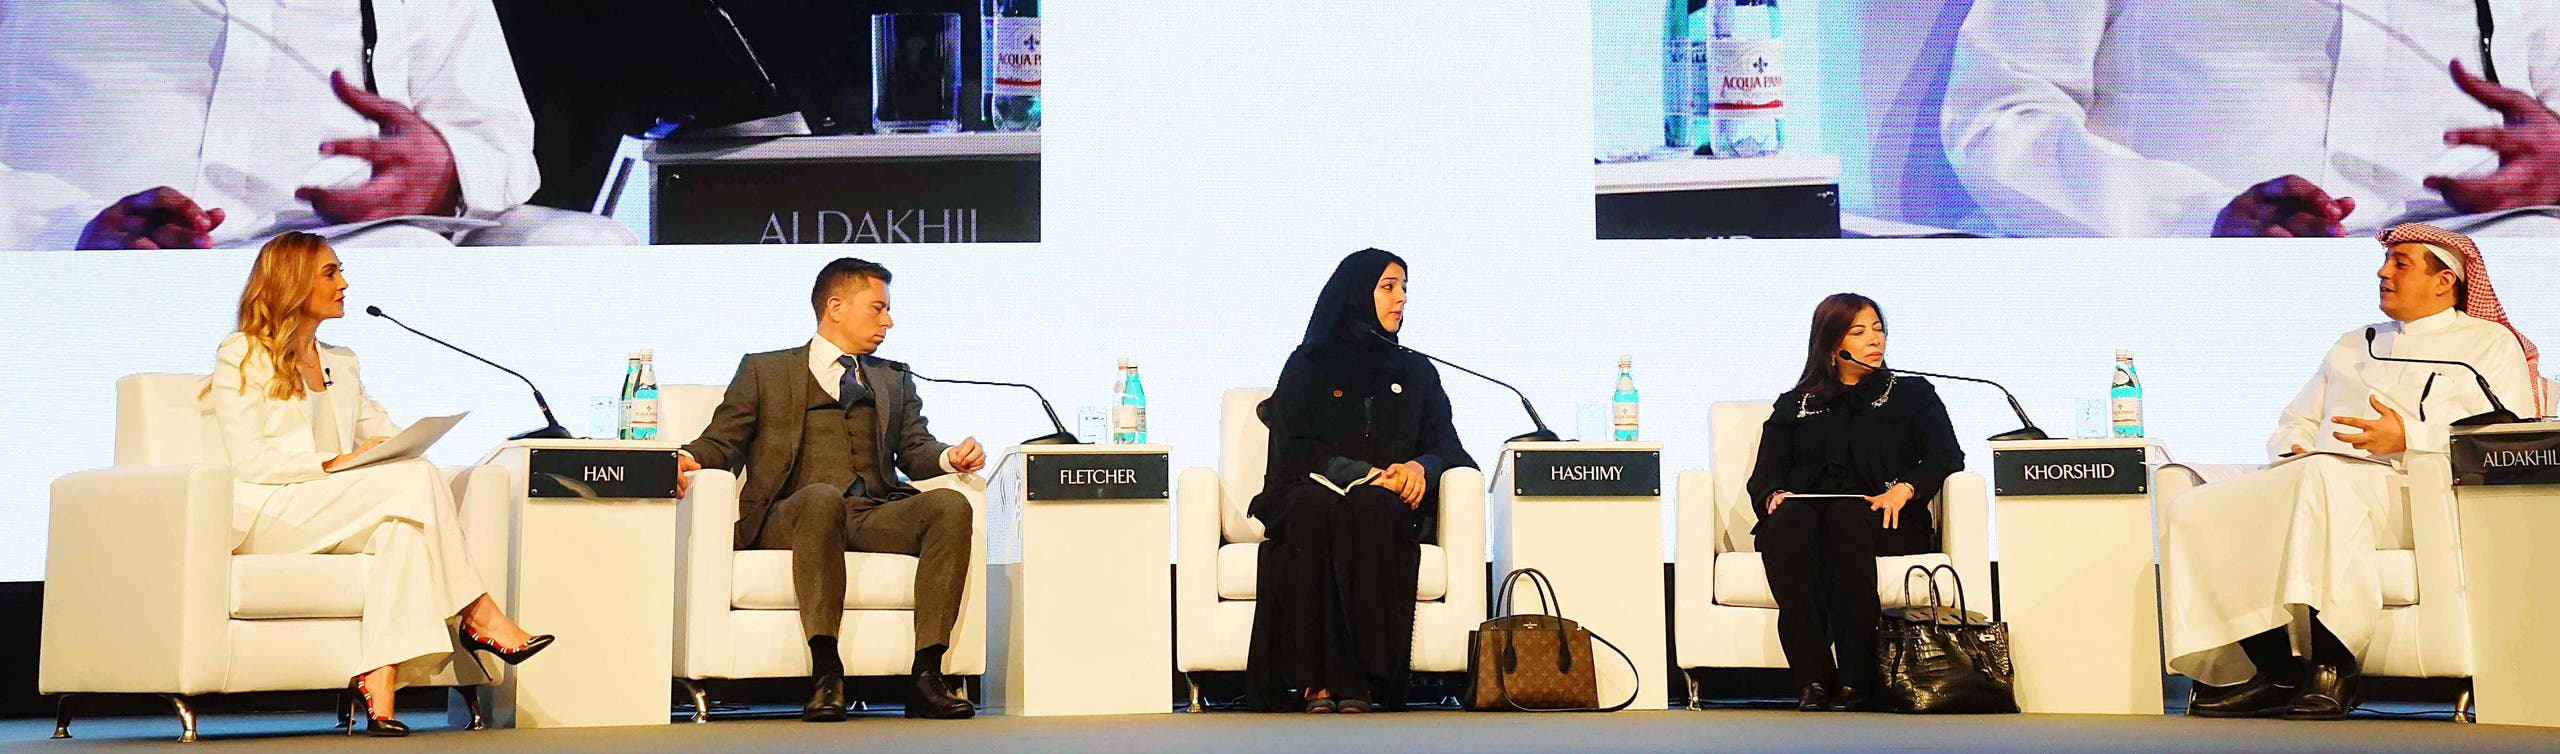 Reem Al Hashimy, UAE Minister of State for International Cooperation Director General, Dubai Expo 2020 Bureau, was also part of the panel. (Supplied)